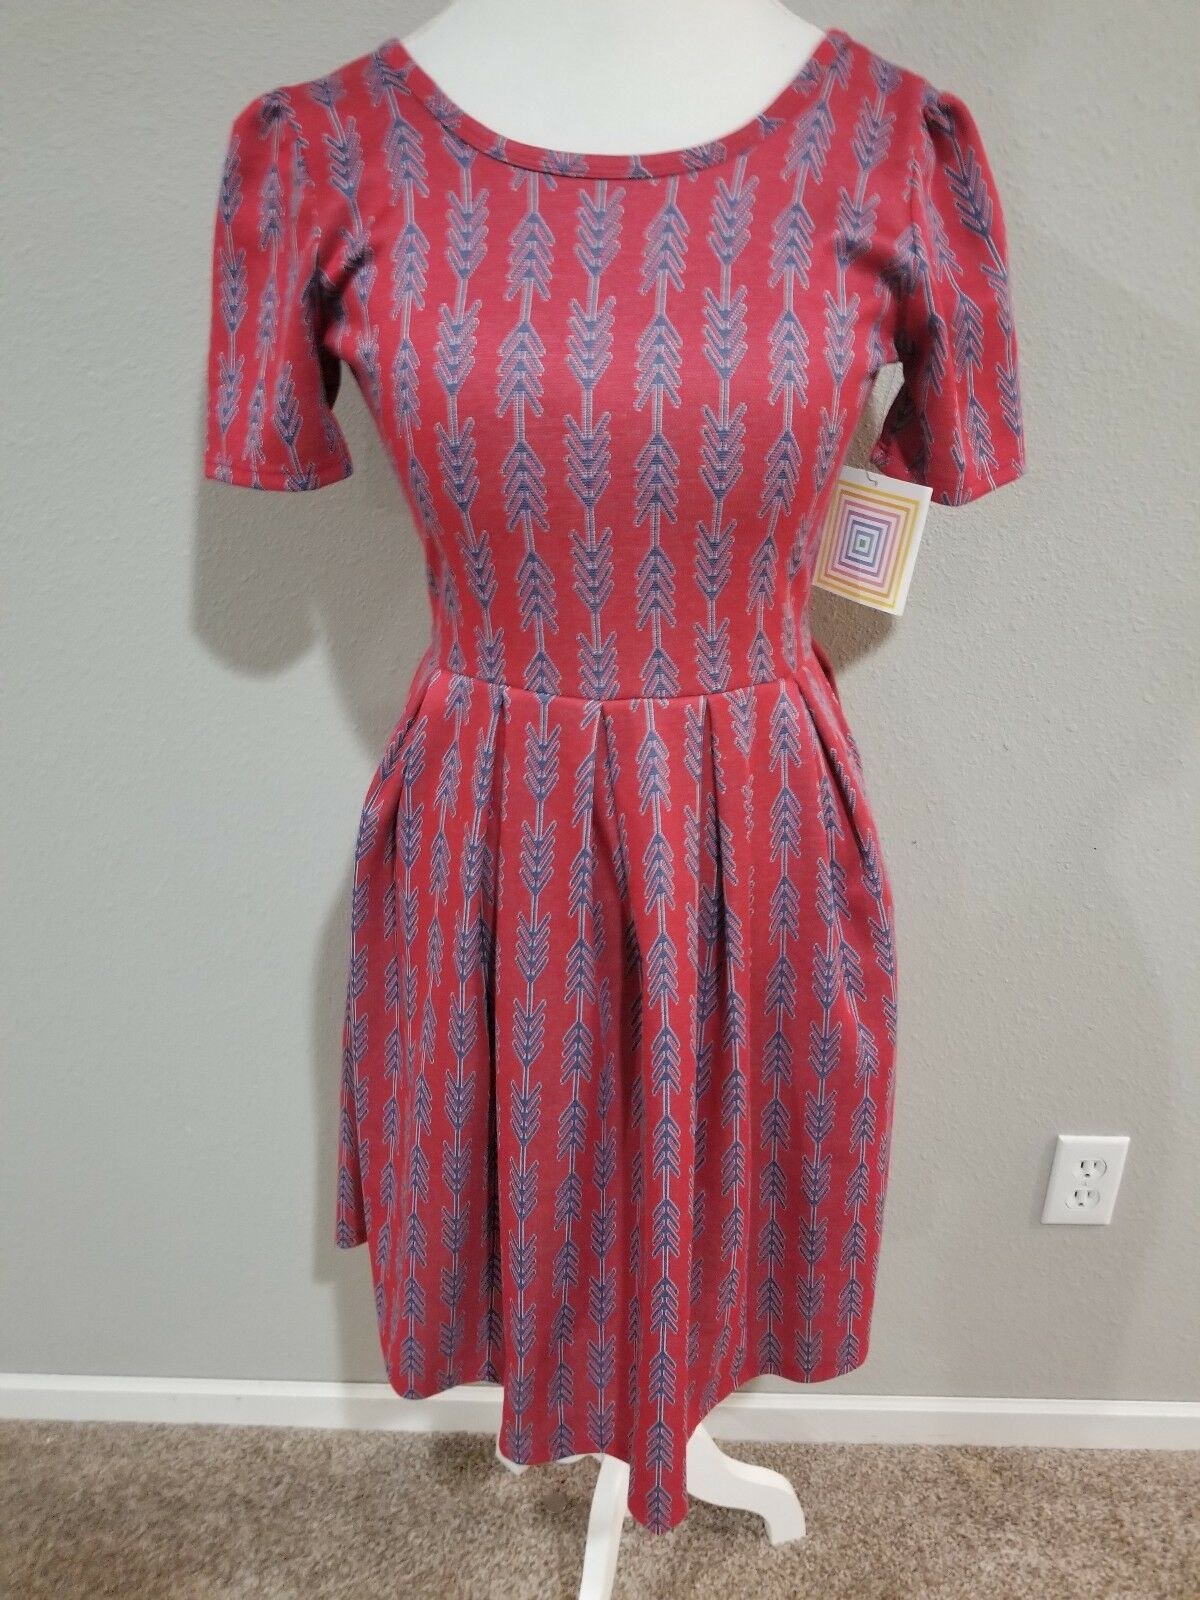 LuLaRoe Woherren Amelia Dress- Casual  Modest- rot with Blau Arrows- Größe S NWT